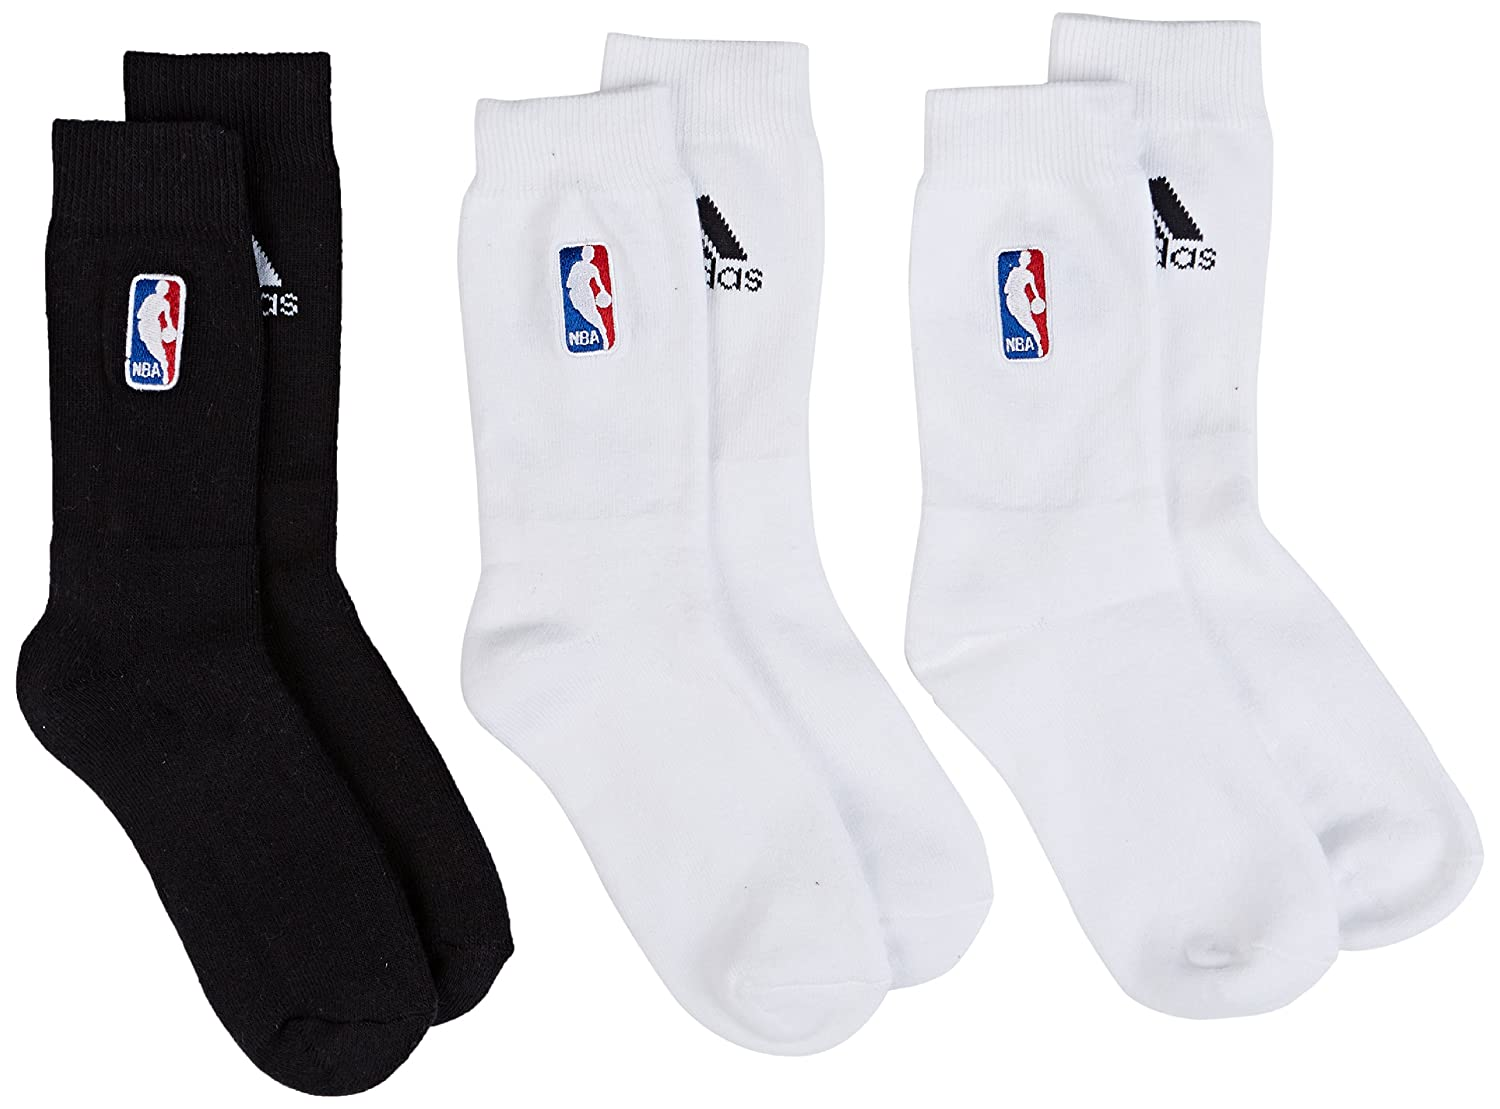 PACK DE 3 CALCETINES NBA ADIDAS